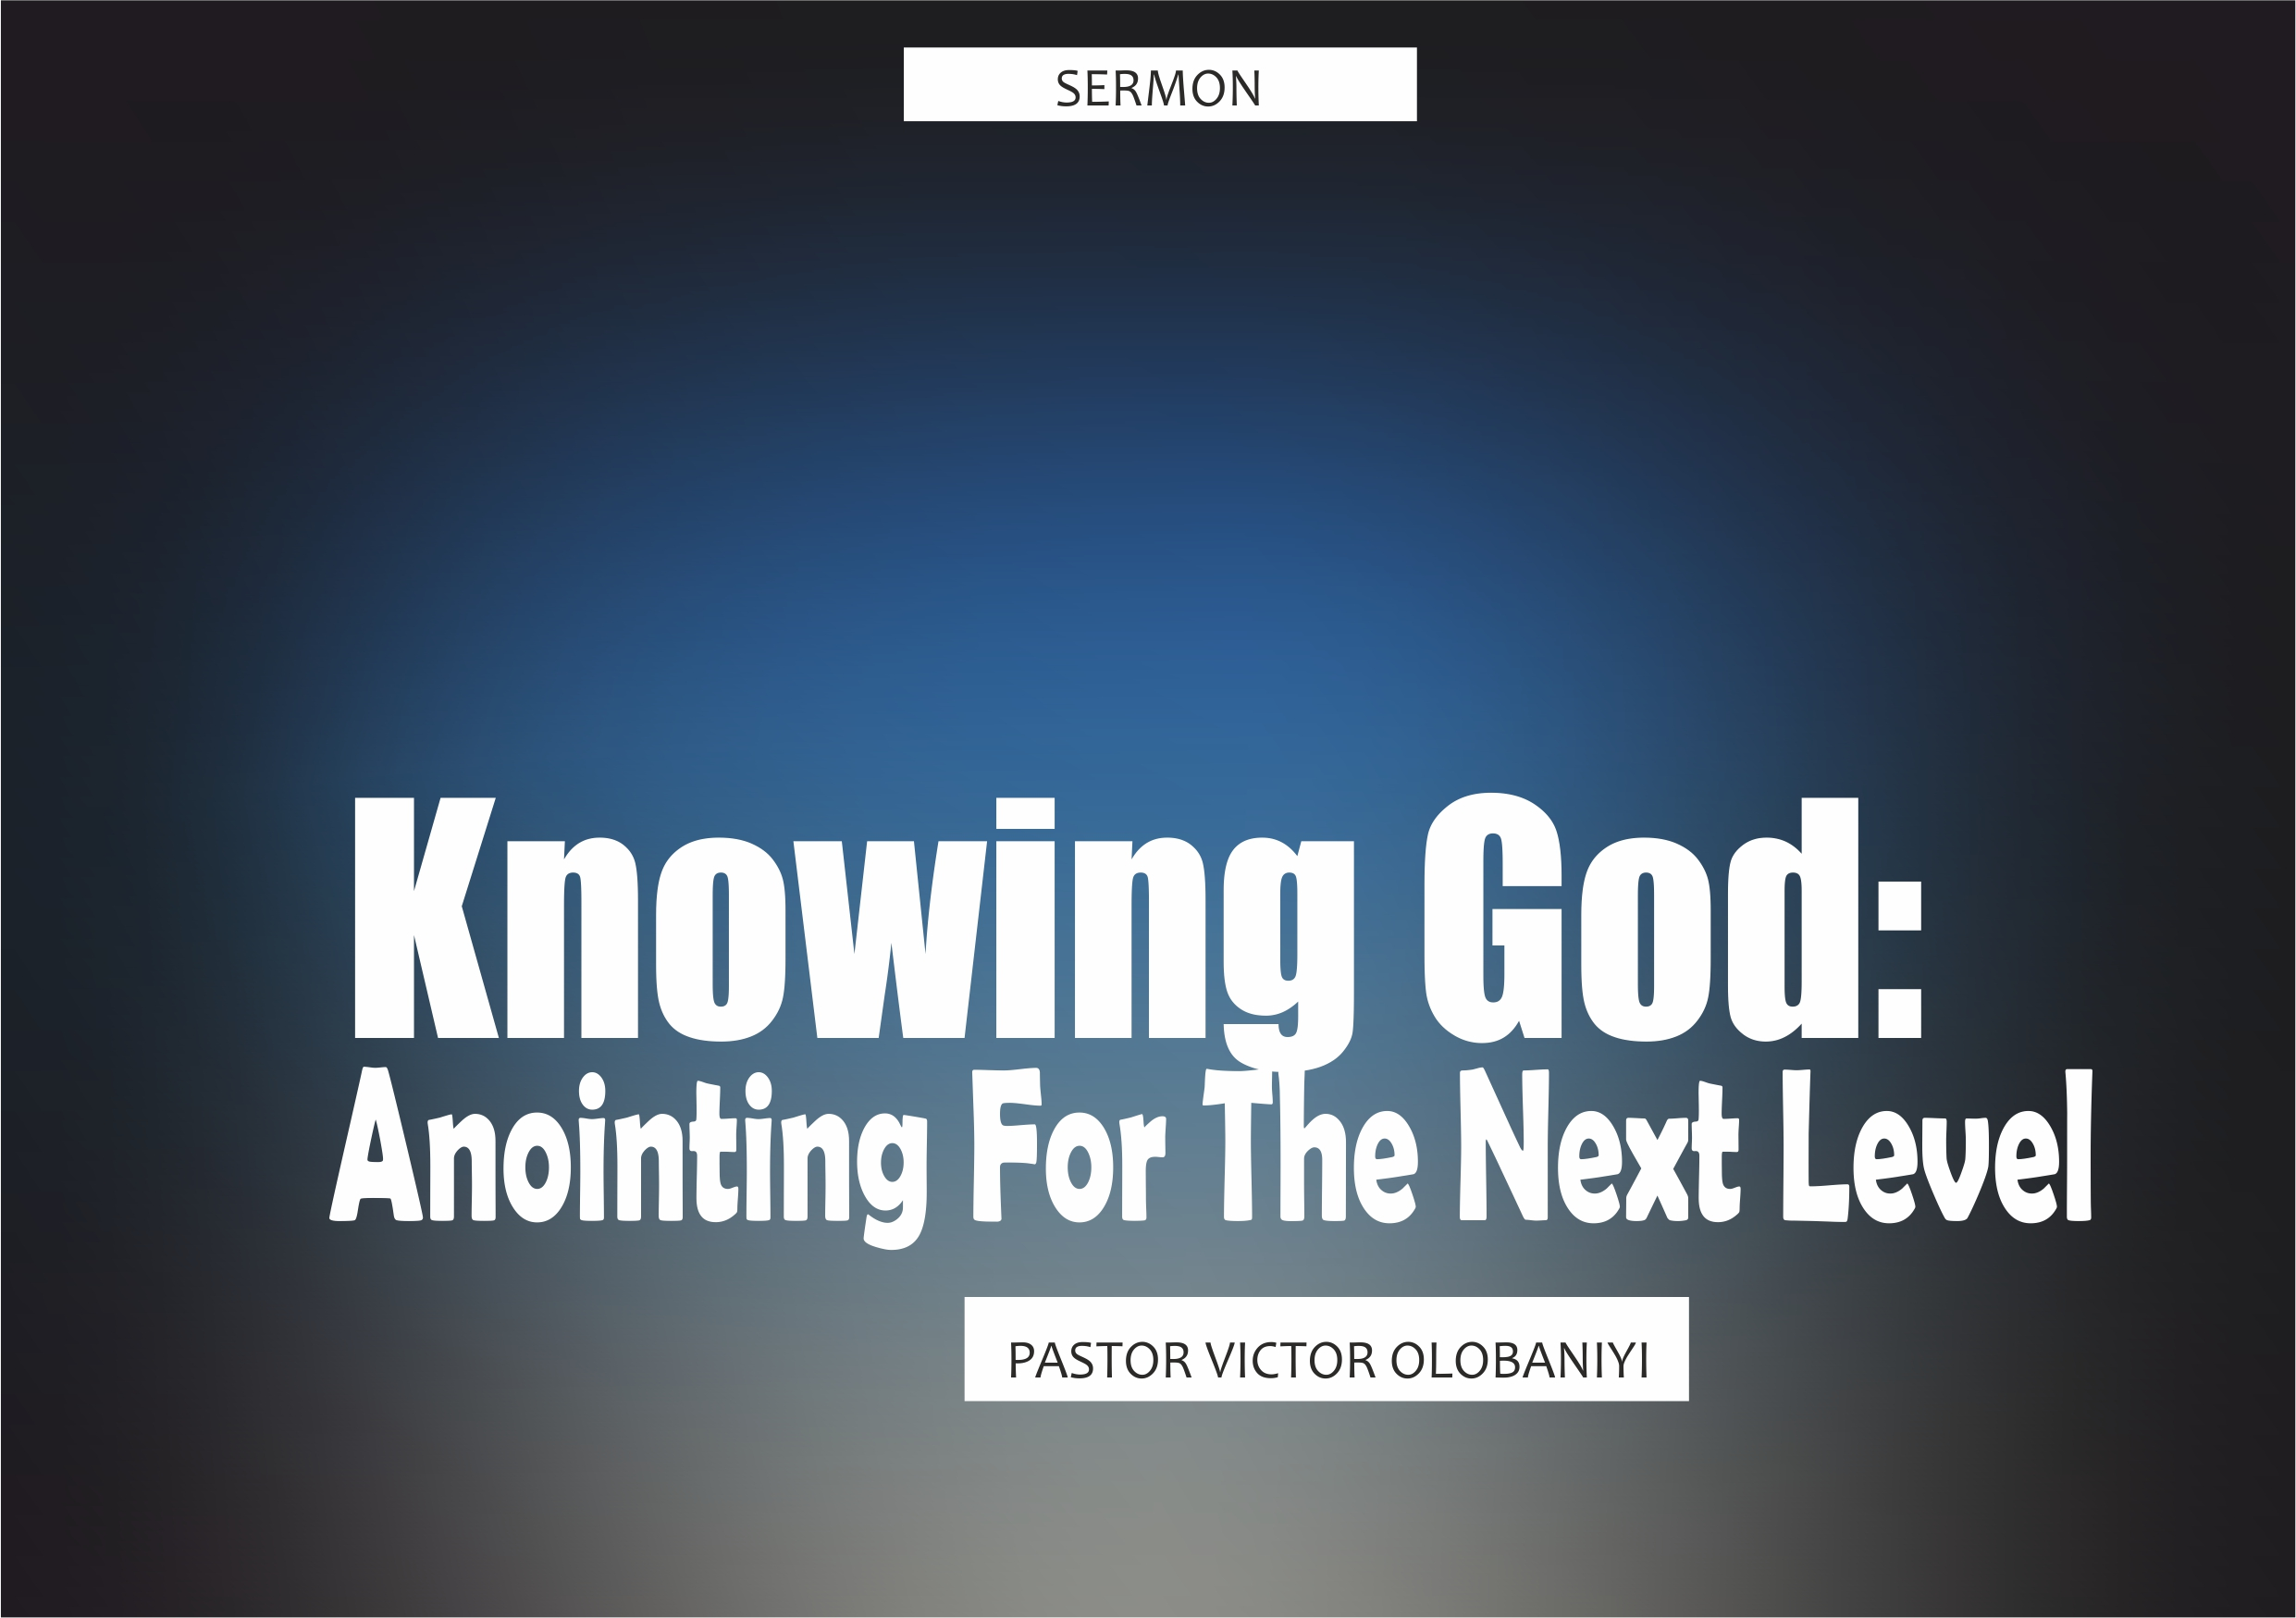 Knowing God: Anointing For The Next Level, by Pastor Victor Olobaniyi